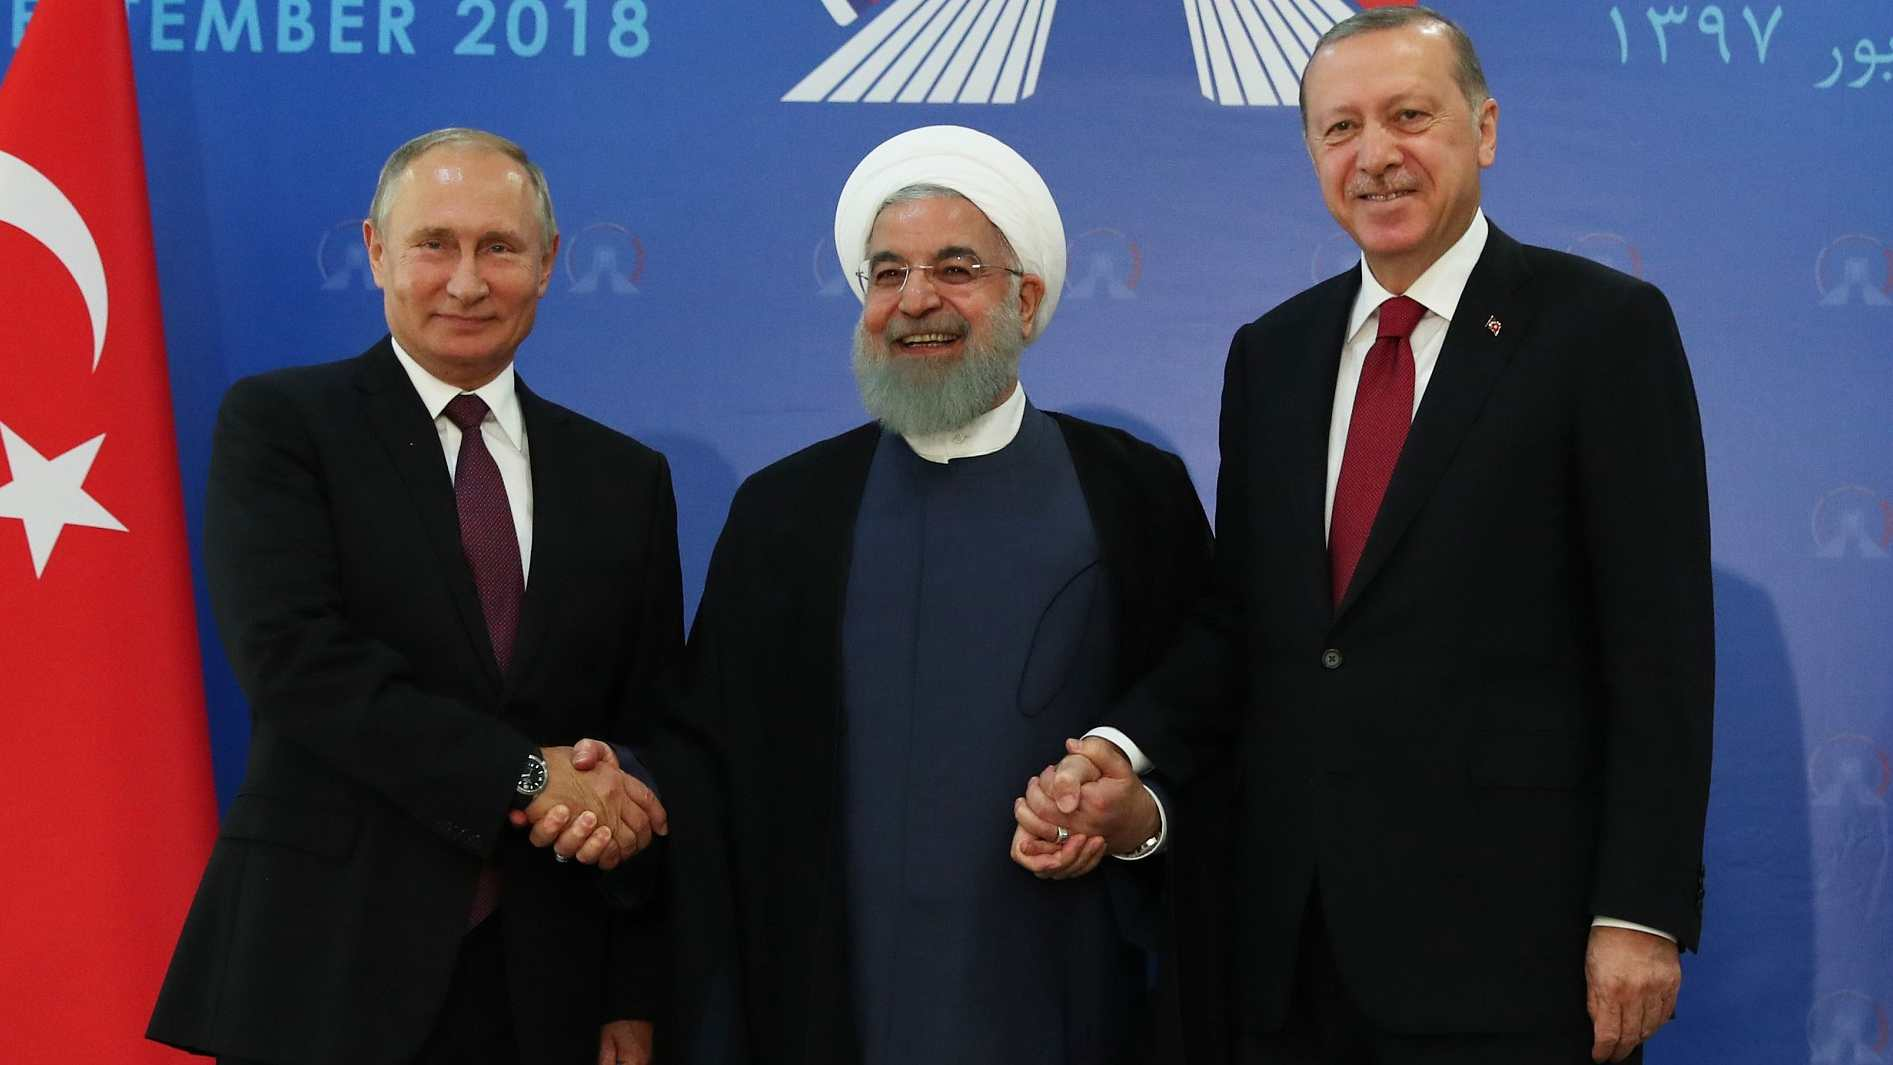 Iran, Russia and Turkey agree to work 'in spirit of cooperation' over Idlib